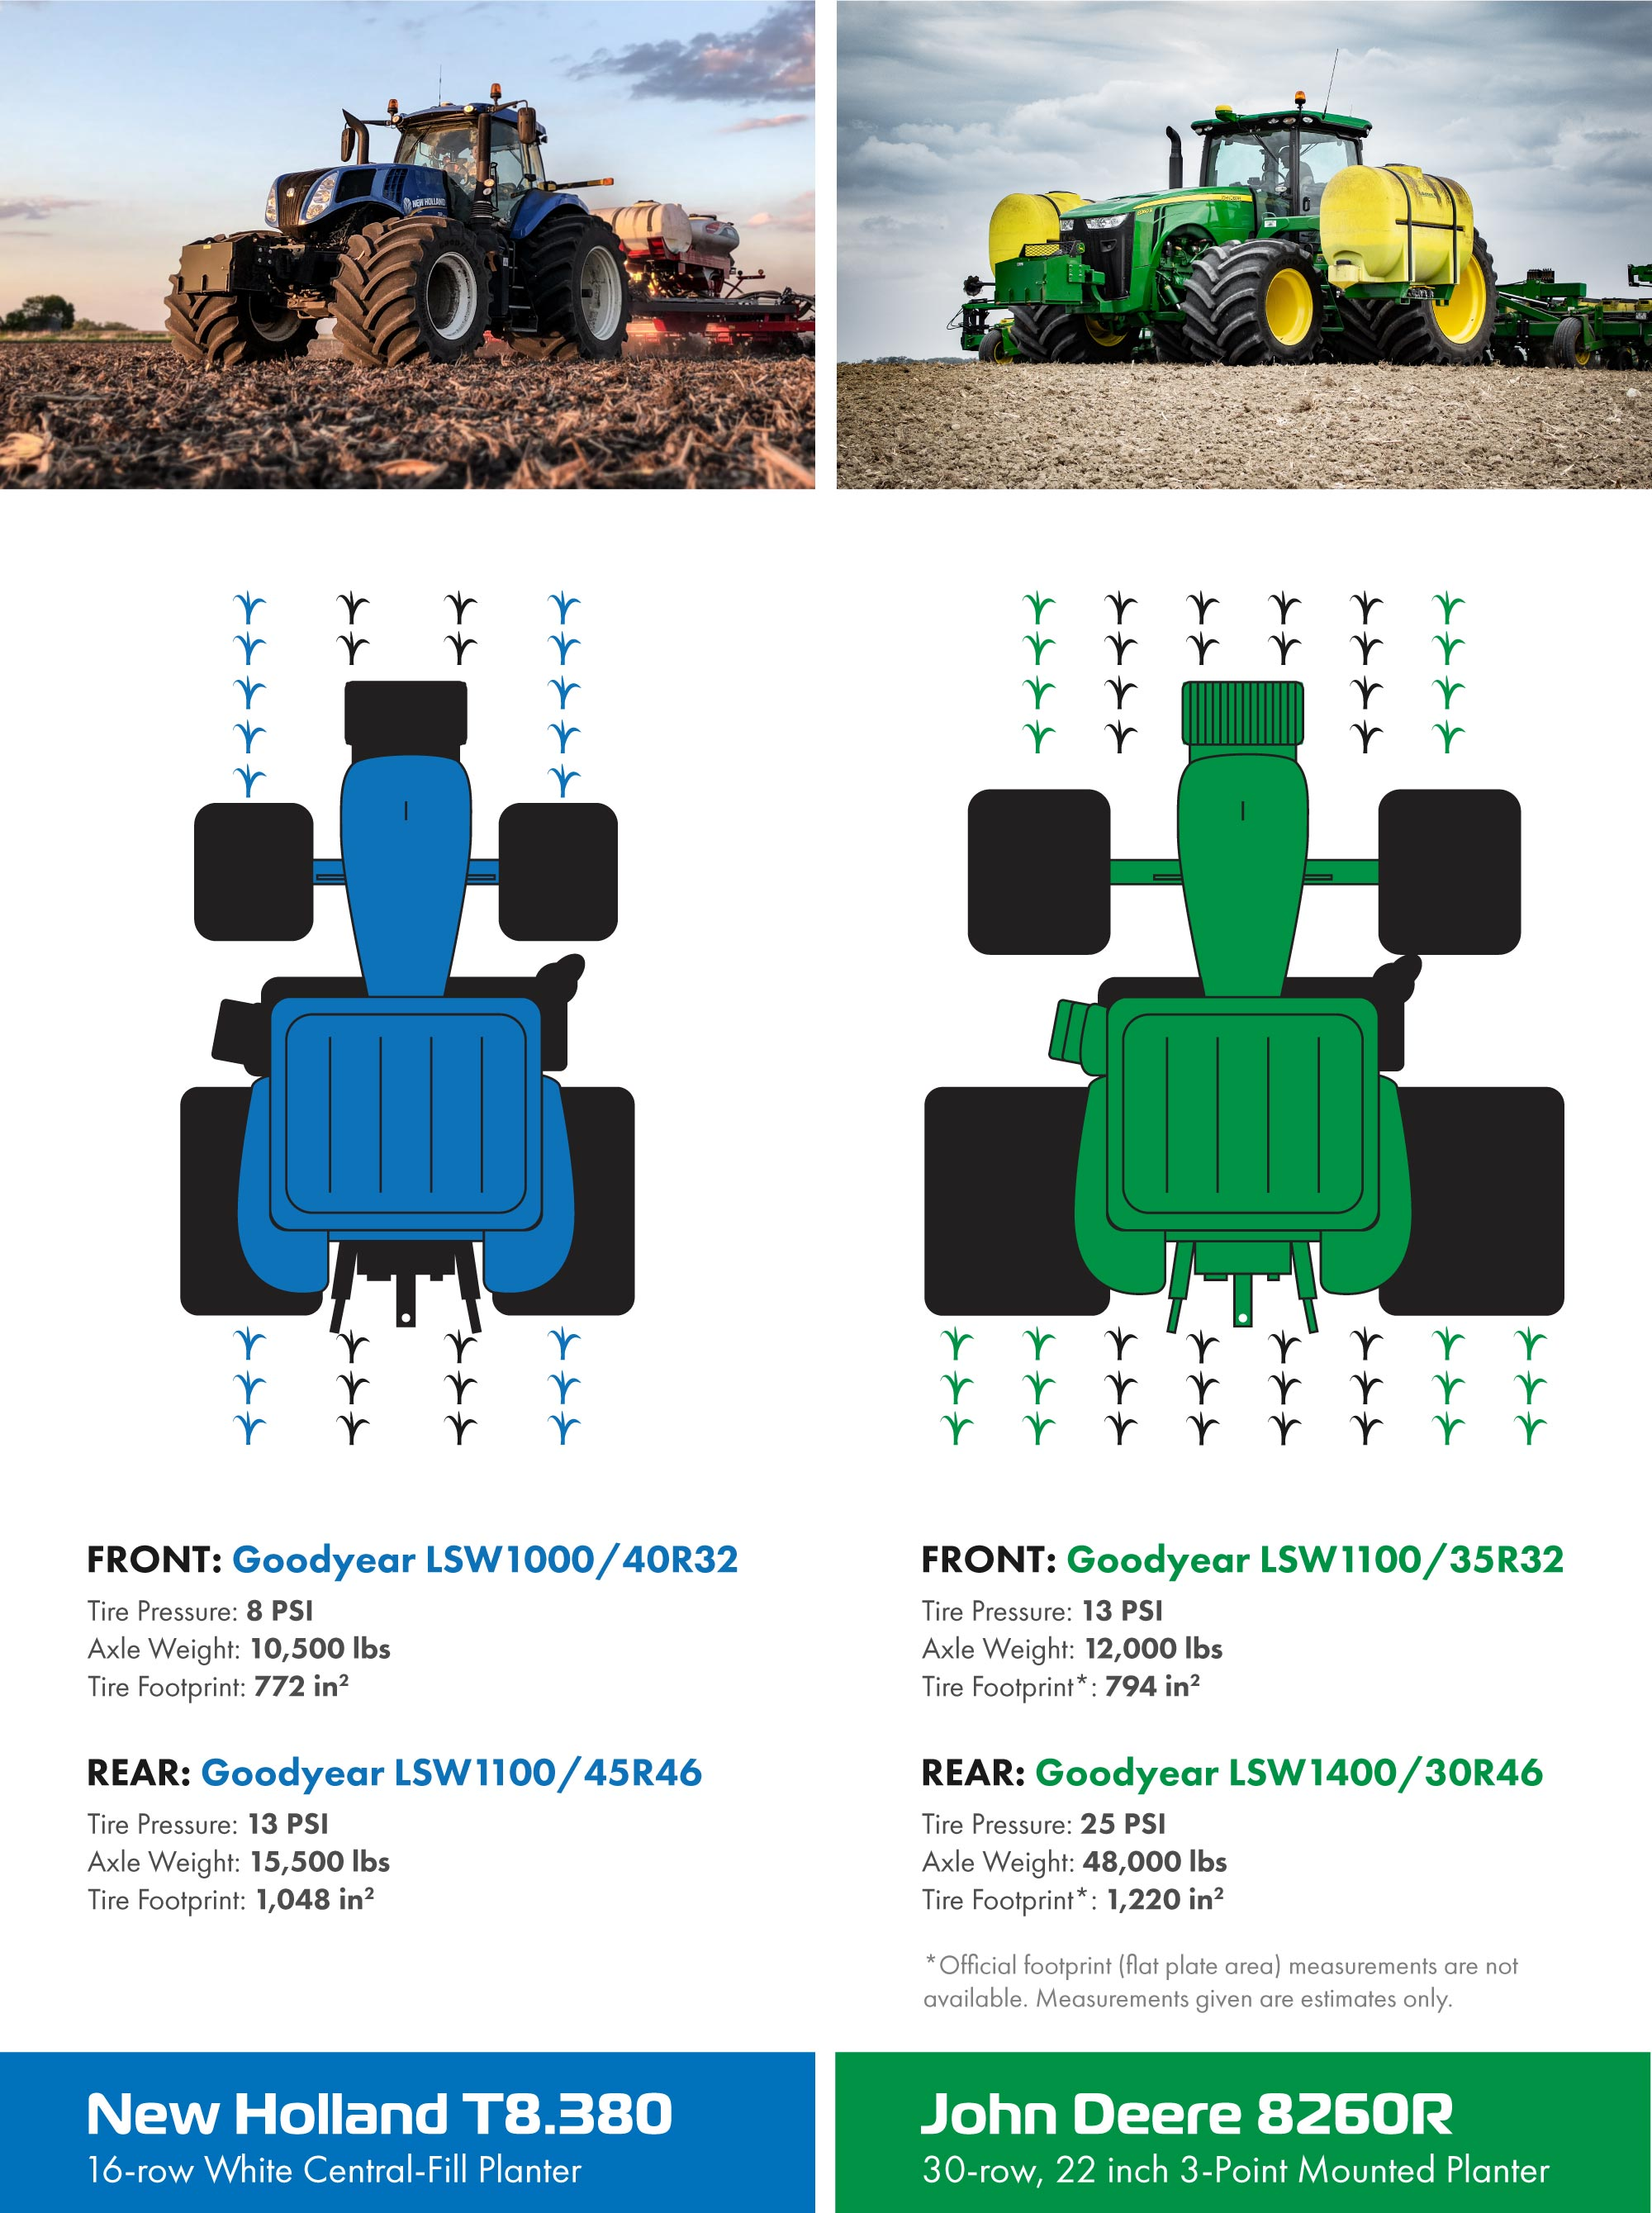 Goodyear LSW Super Single tire setup comparison between a New Holland T8.380 with LSW1100/45R46 tires and a John Deere 8260R tractor with LSW1400/30R46 tires